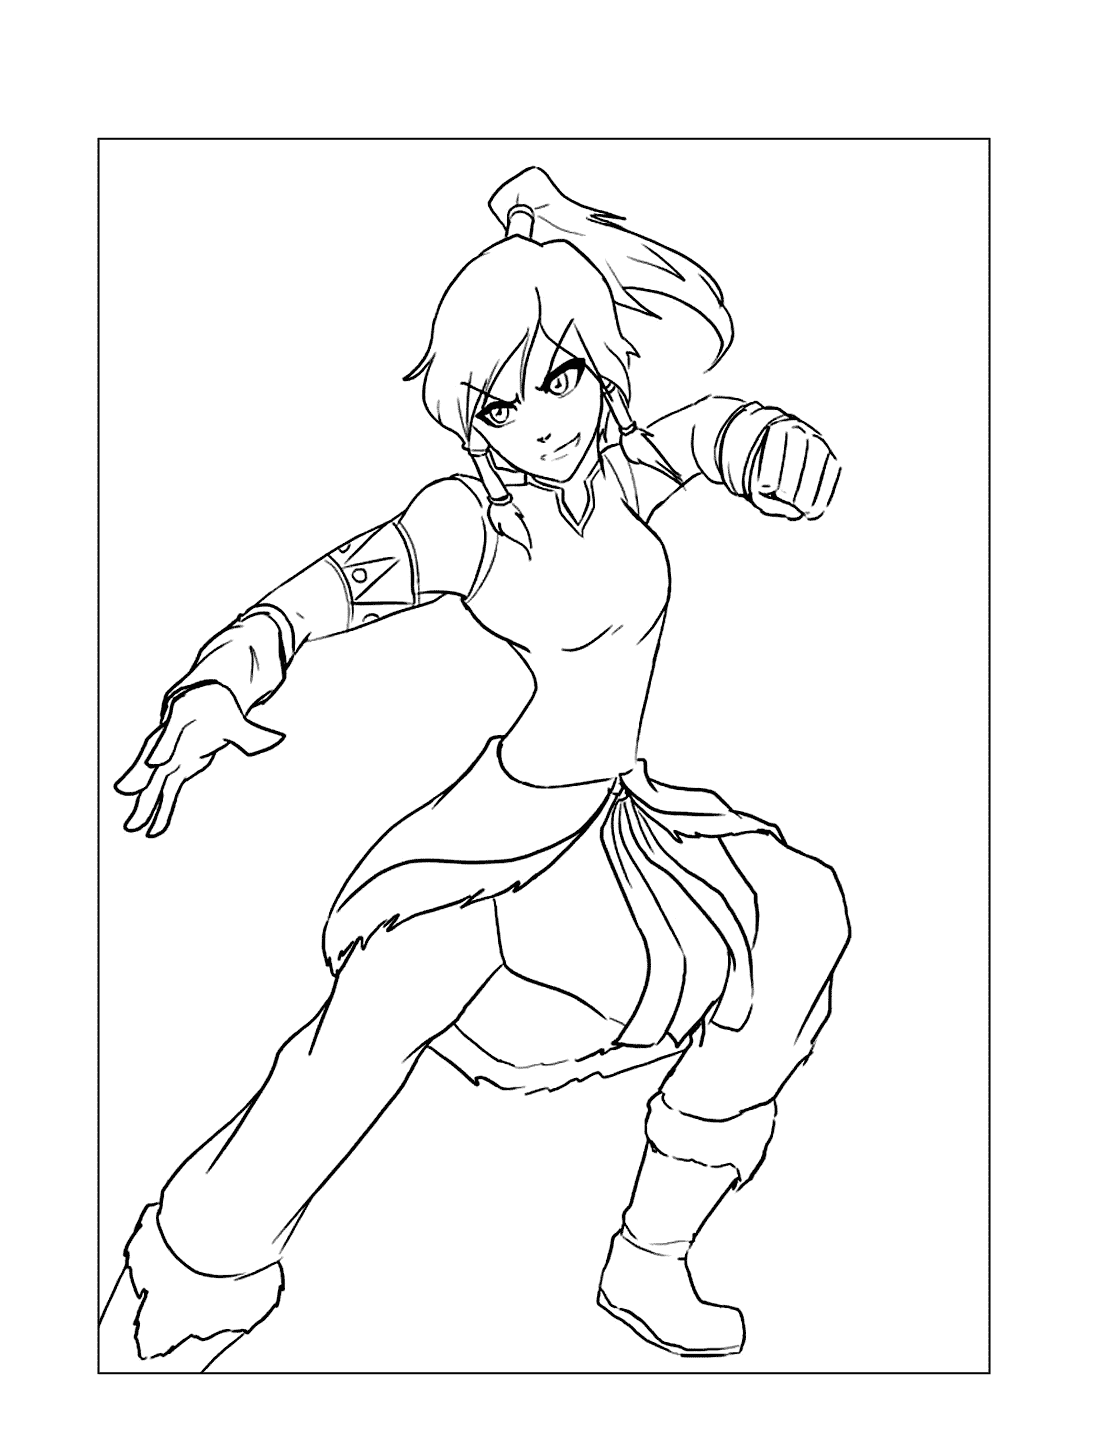 Korra Avatar Coloring Pages